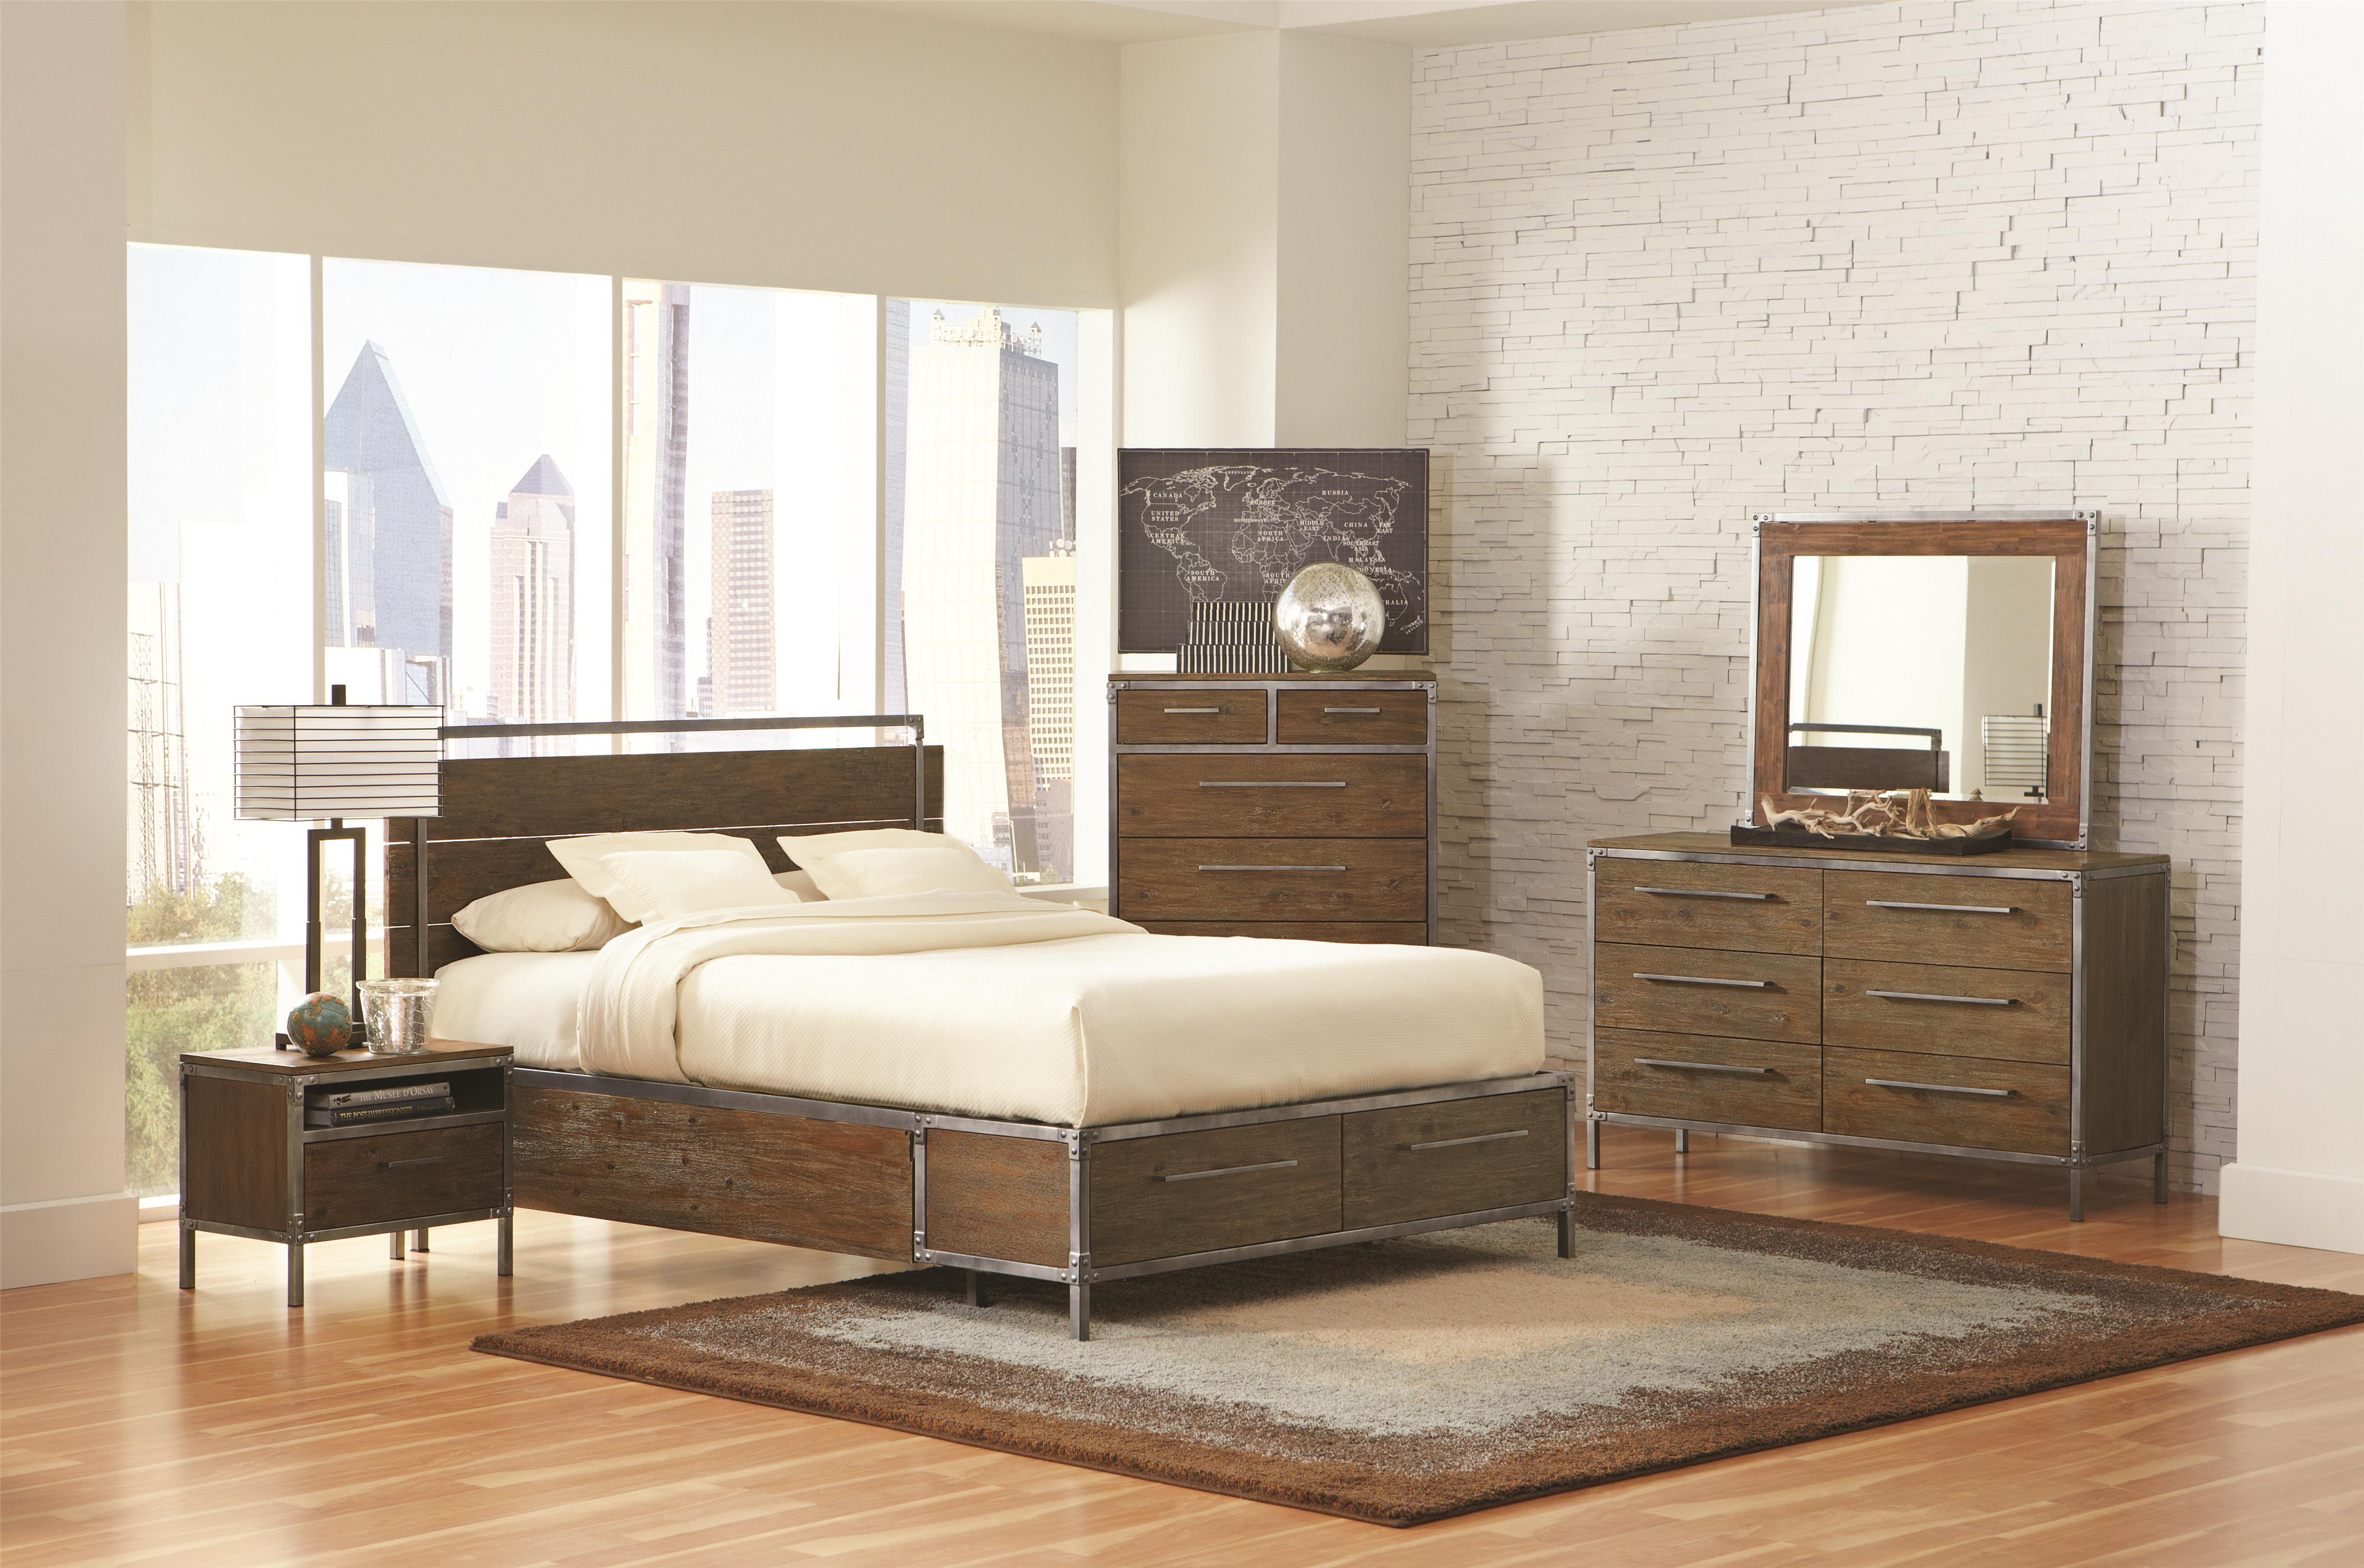 Coaster Arcadia 20380 Queen Bedroom Group - Item Number: 20380 Q Bedroom Group 1